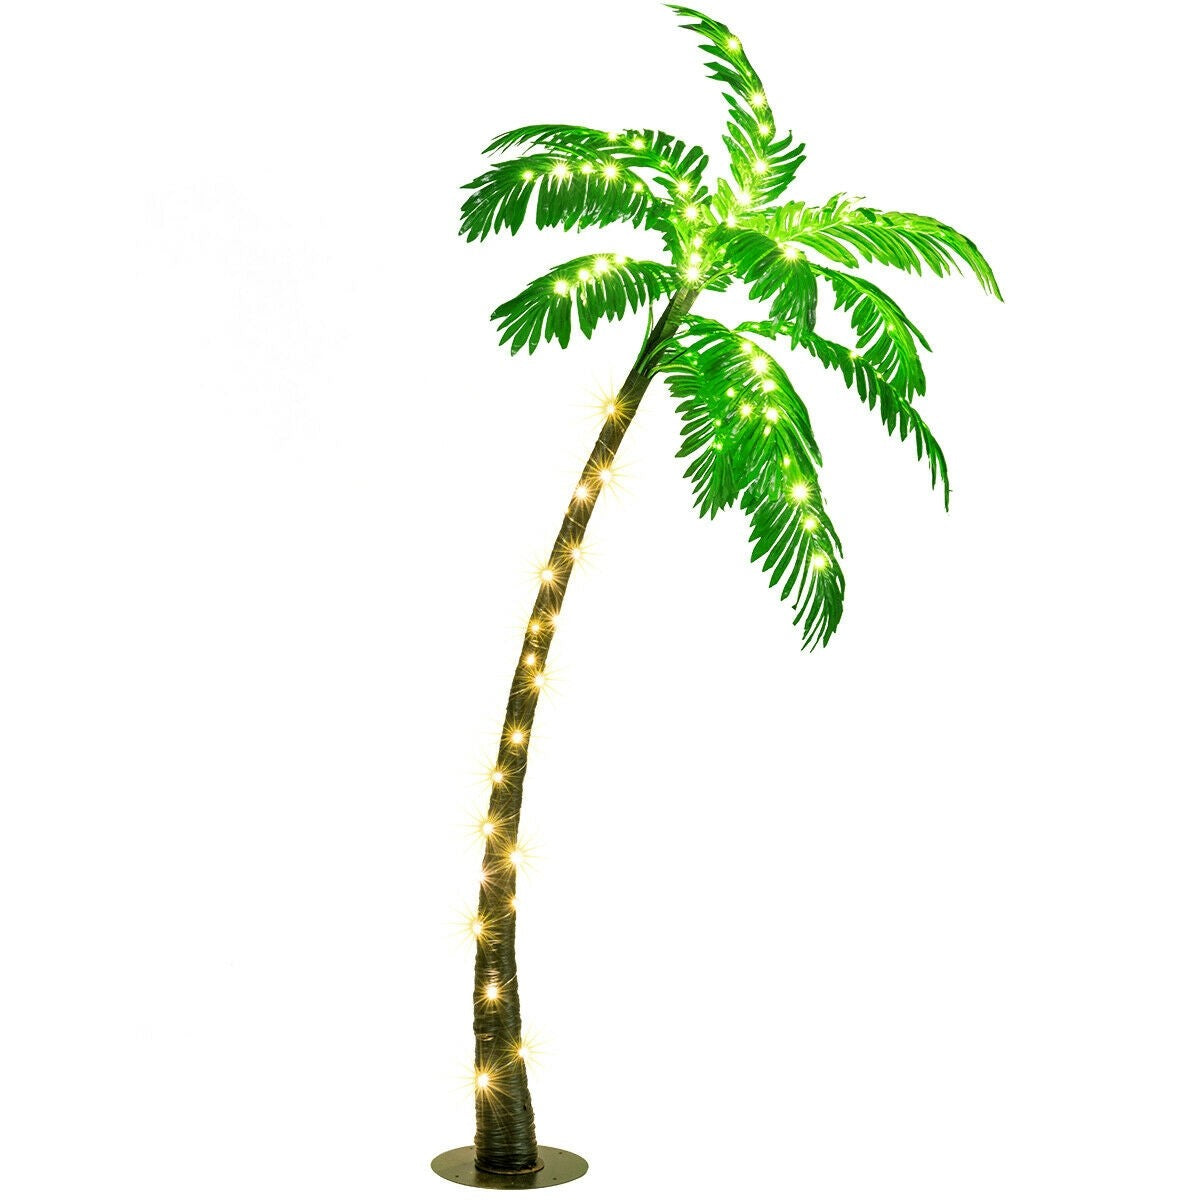 Premium Artificial Lighted Palm Tree Outdoor Fake Tree with LED - Morealis